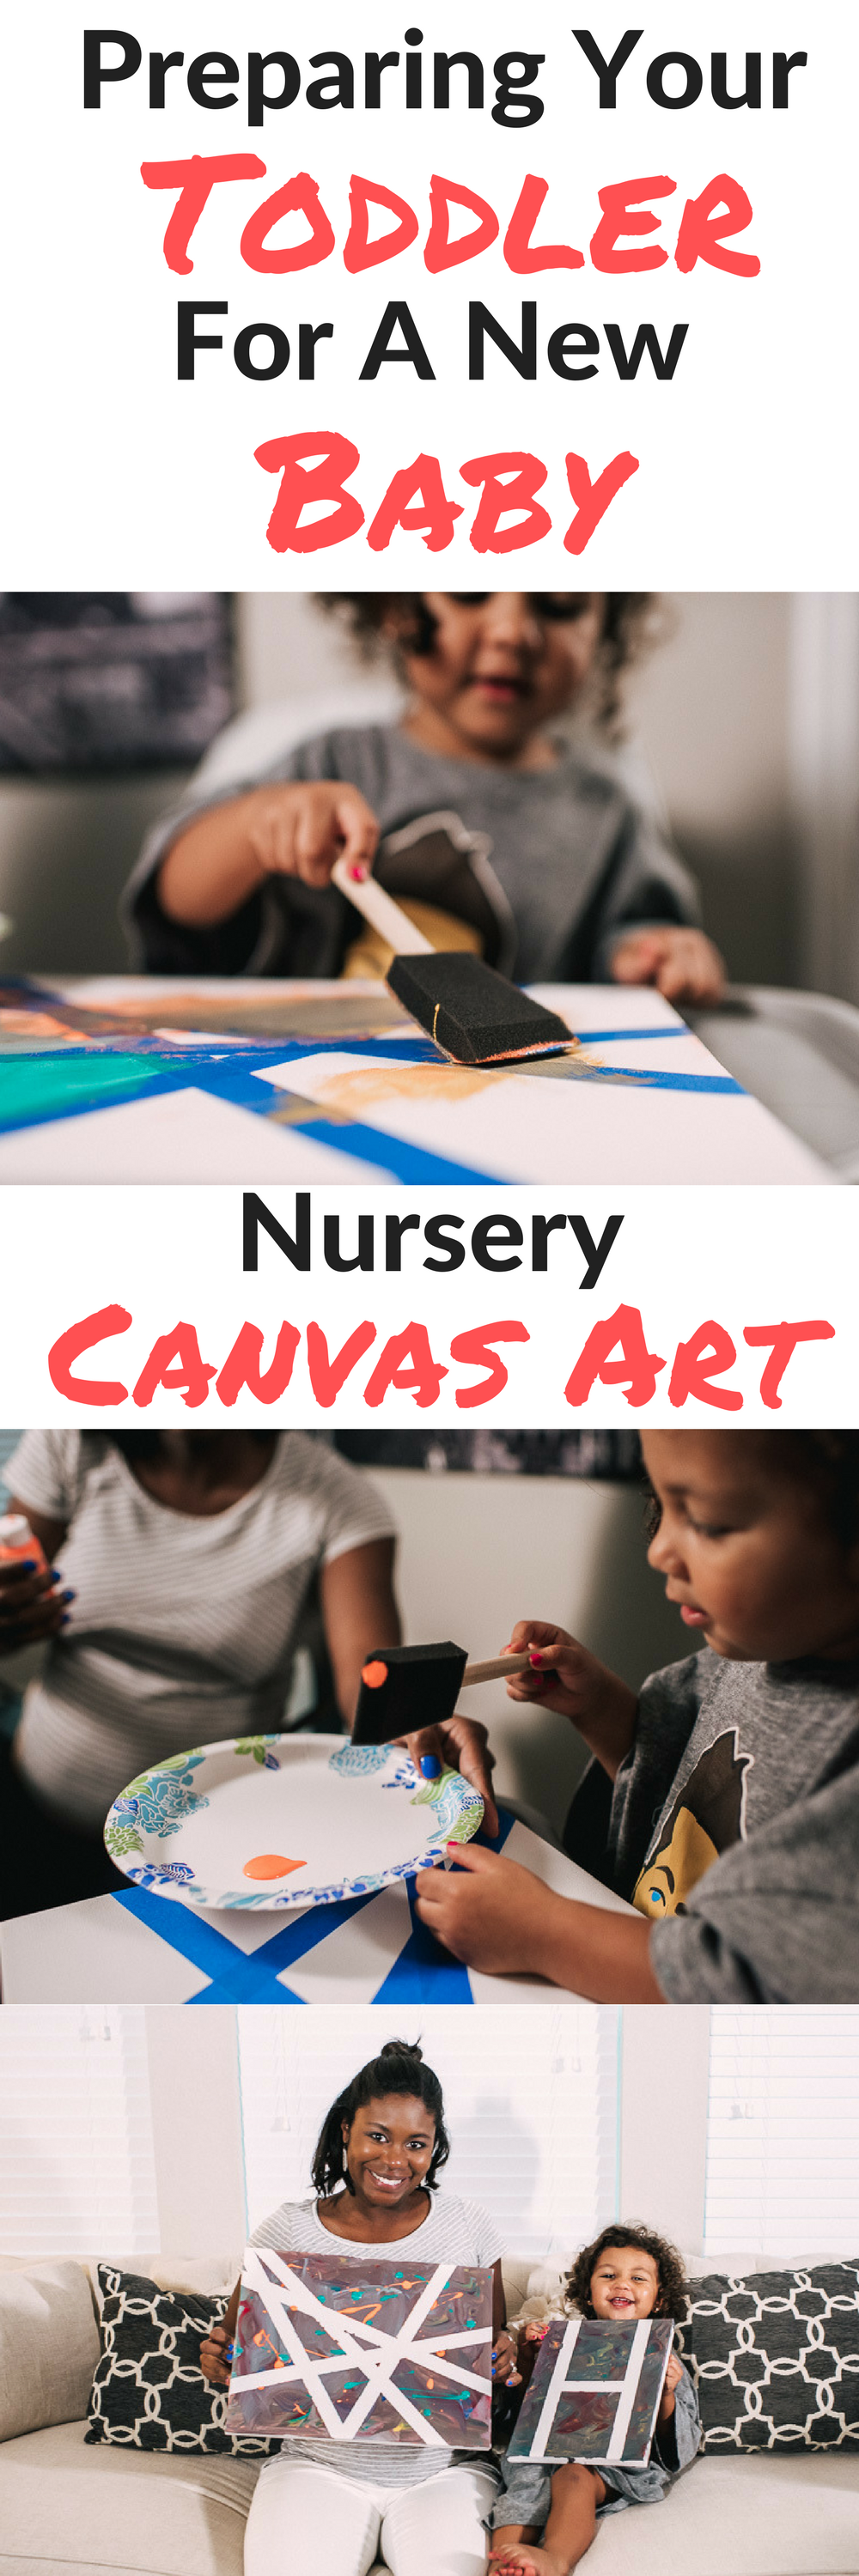 Prepare your toddler for a new baby by allowing them to contribute to the new baby's room! Tutorial on how to make nursery canvas art with your toddler while minimizing the mess with Huggies one and done wipes #ThinkOutsideTheWipe [ad]